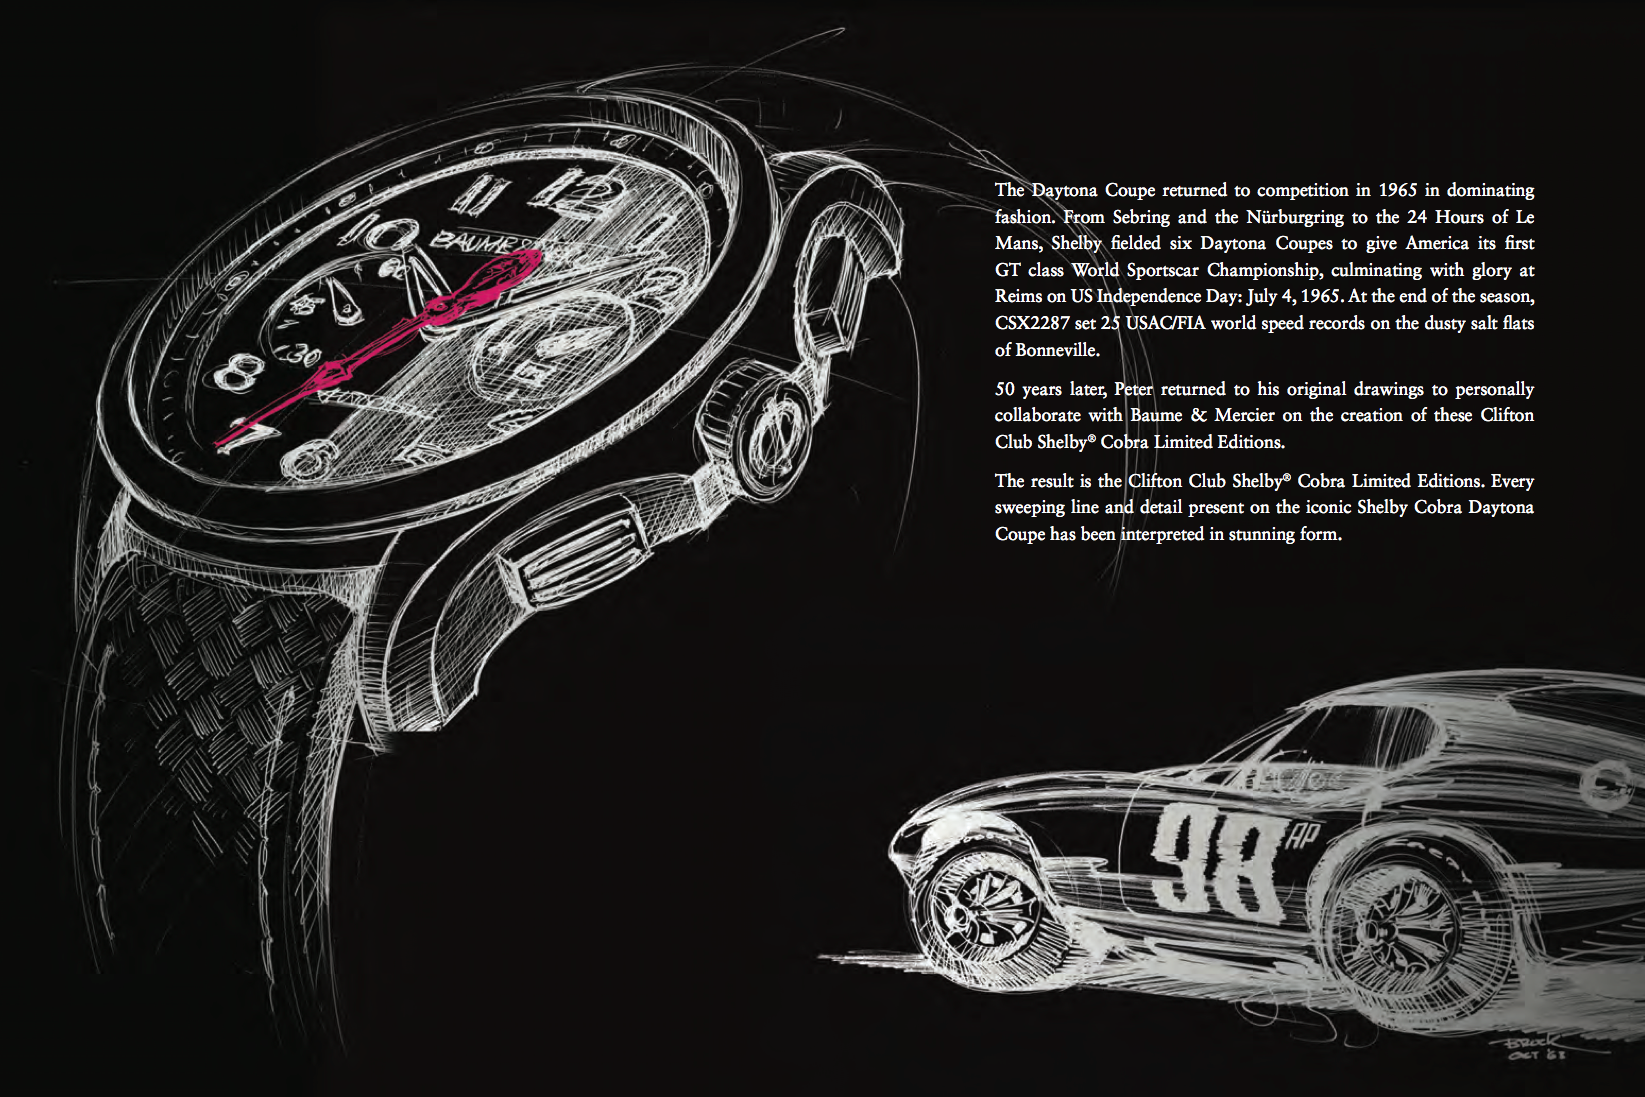 50 years after the creation of the iconic race car, Peter Brock has drawn inspiration from his original drawings and collaborated with Baume & Mercier to create the Clifton Club Shelby® Cobra limited editions.